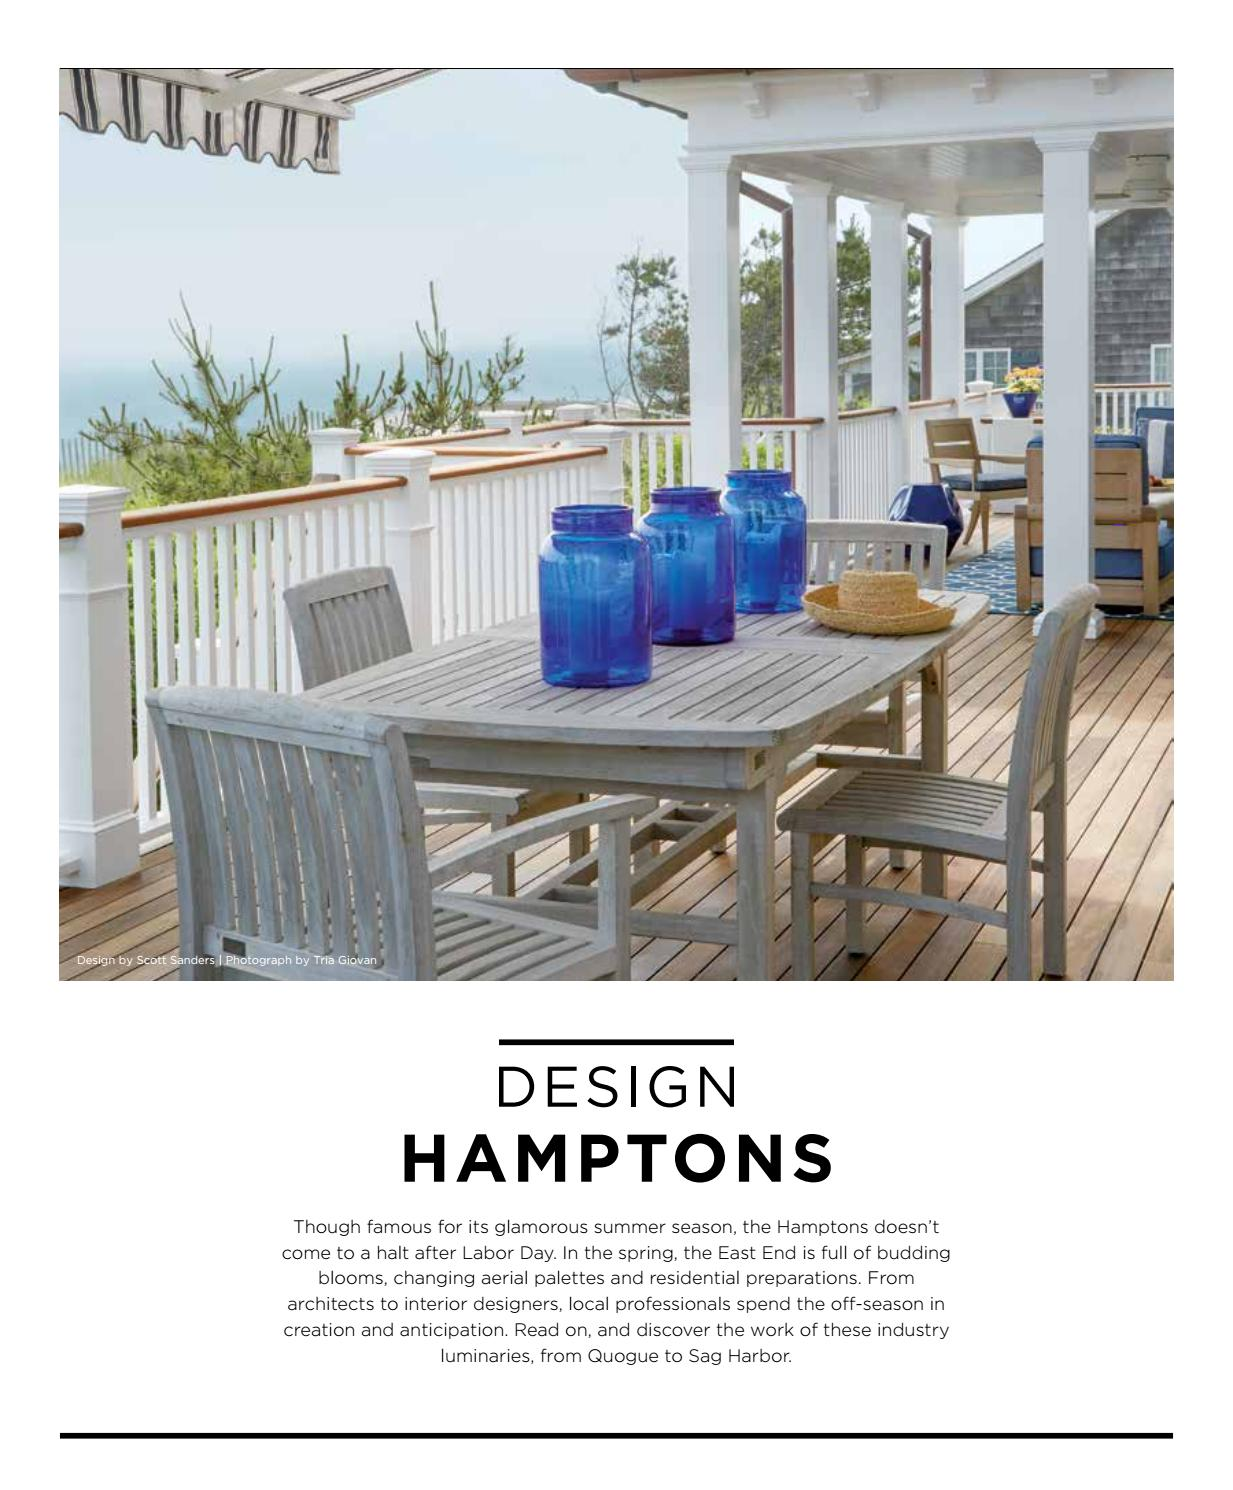 Luxe design hamptons